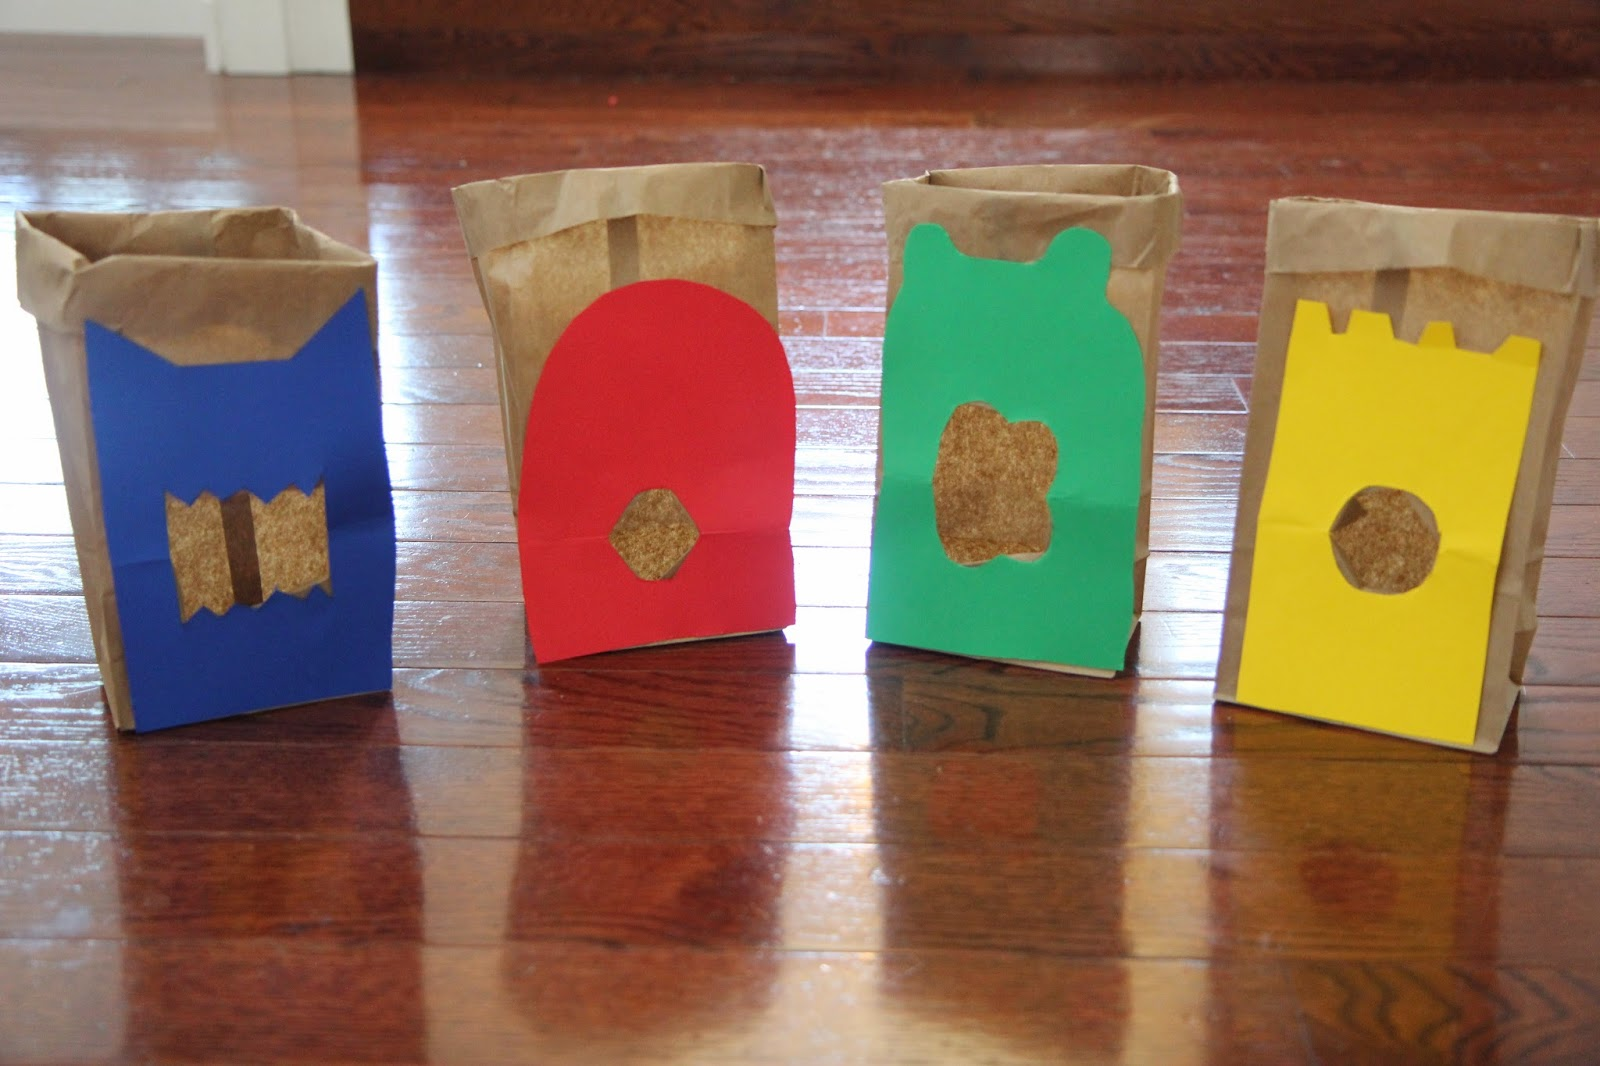 Paper bag activity - Materials Needed Brown Paper Bags Scissors Cardstock Markers Double Stick Tape Googly Eyes Lego Duplo And Regular Lego Bricks